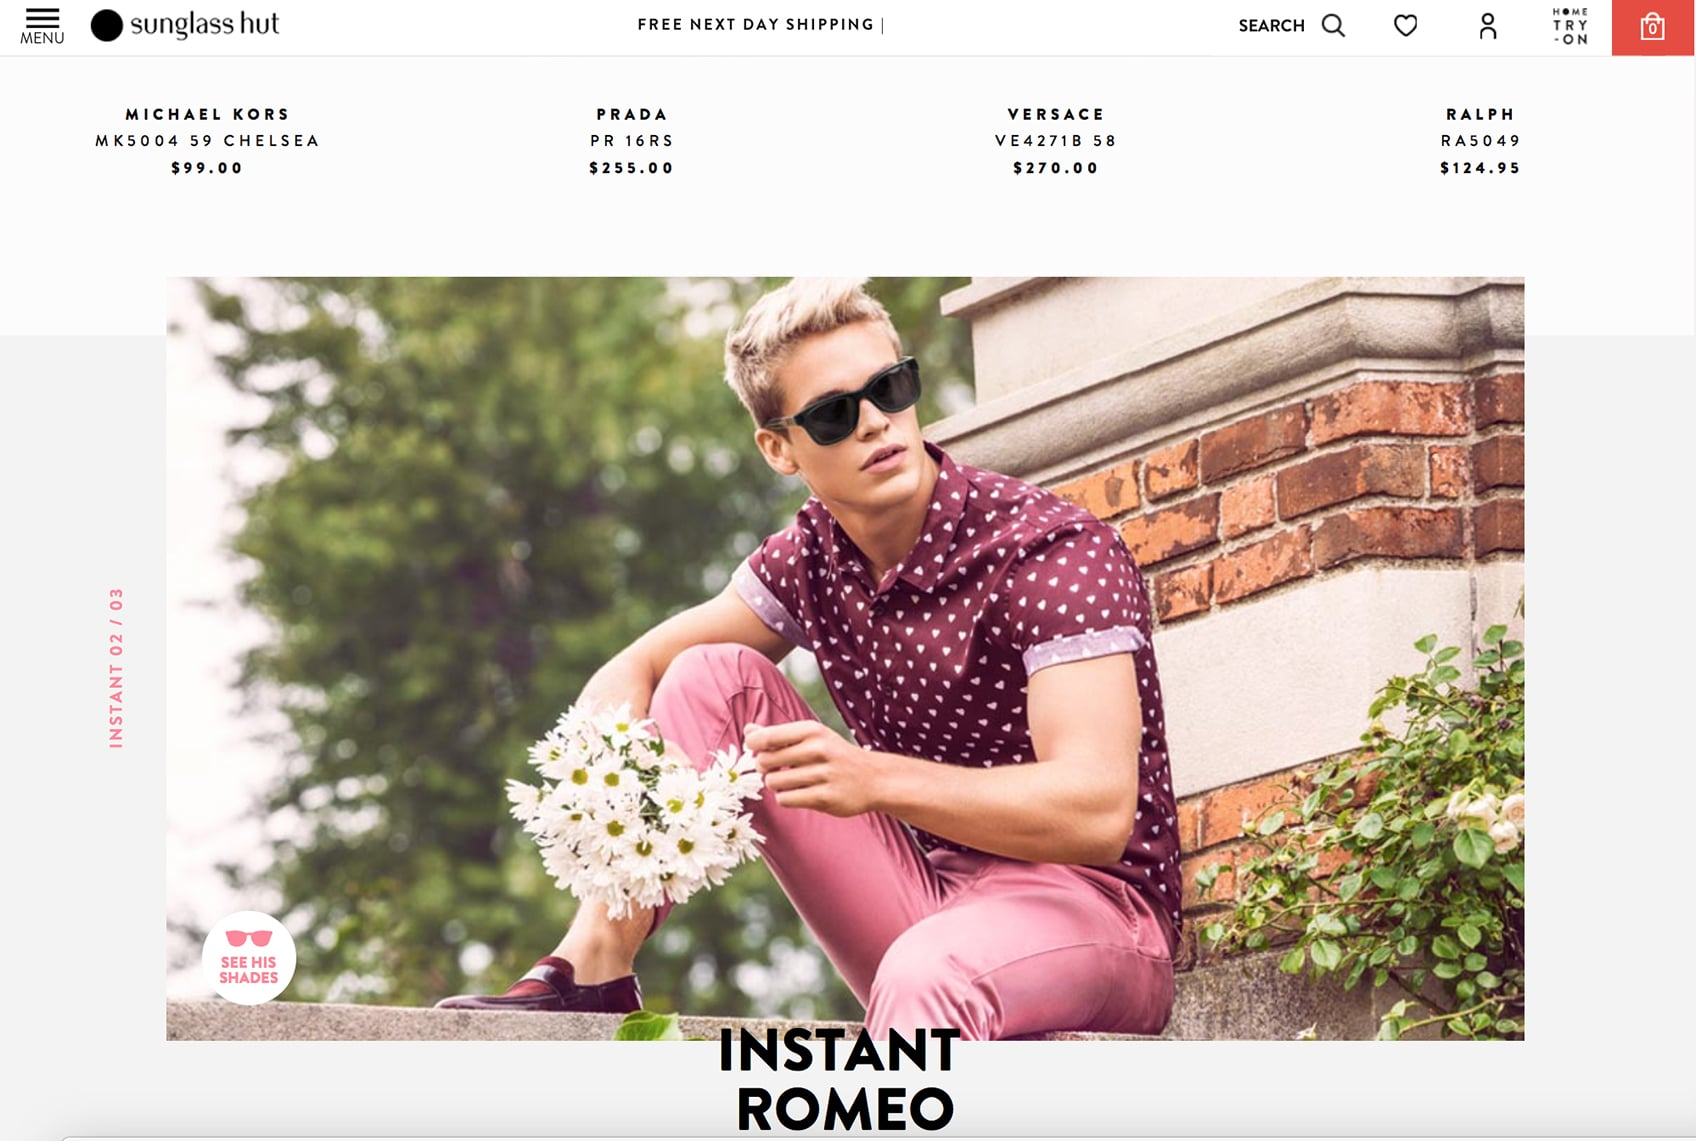 A screenshot of the Sunglass Hut website featuring a young gentleman in pink and purple sitting in front of a brick structure